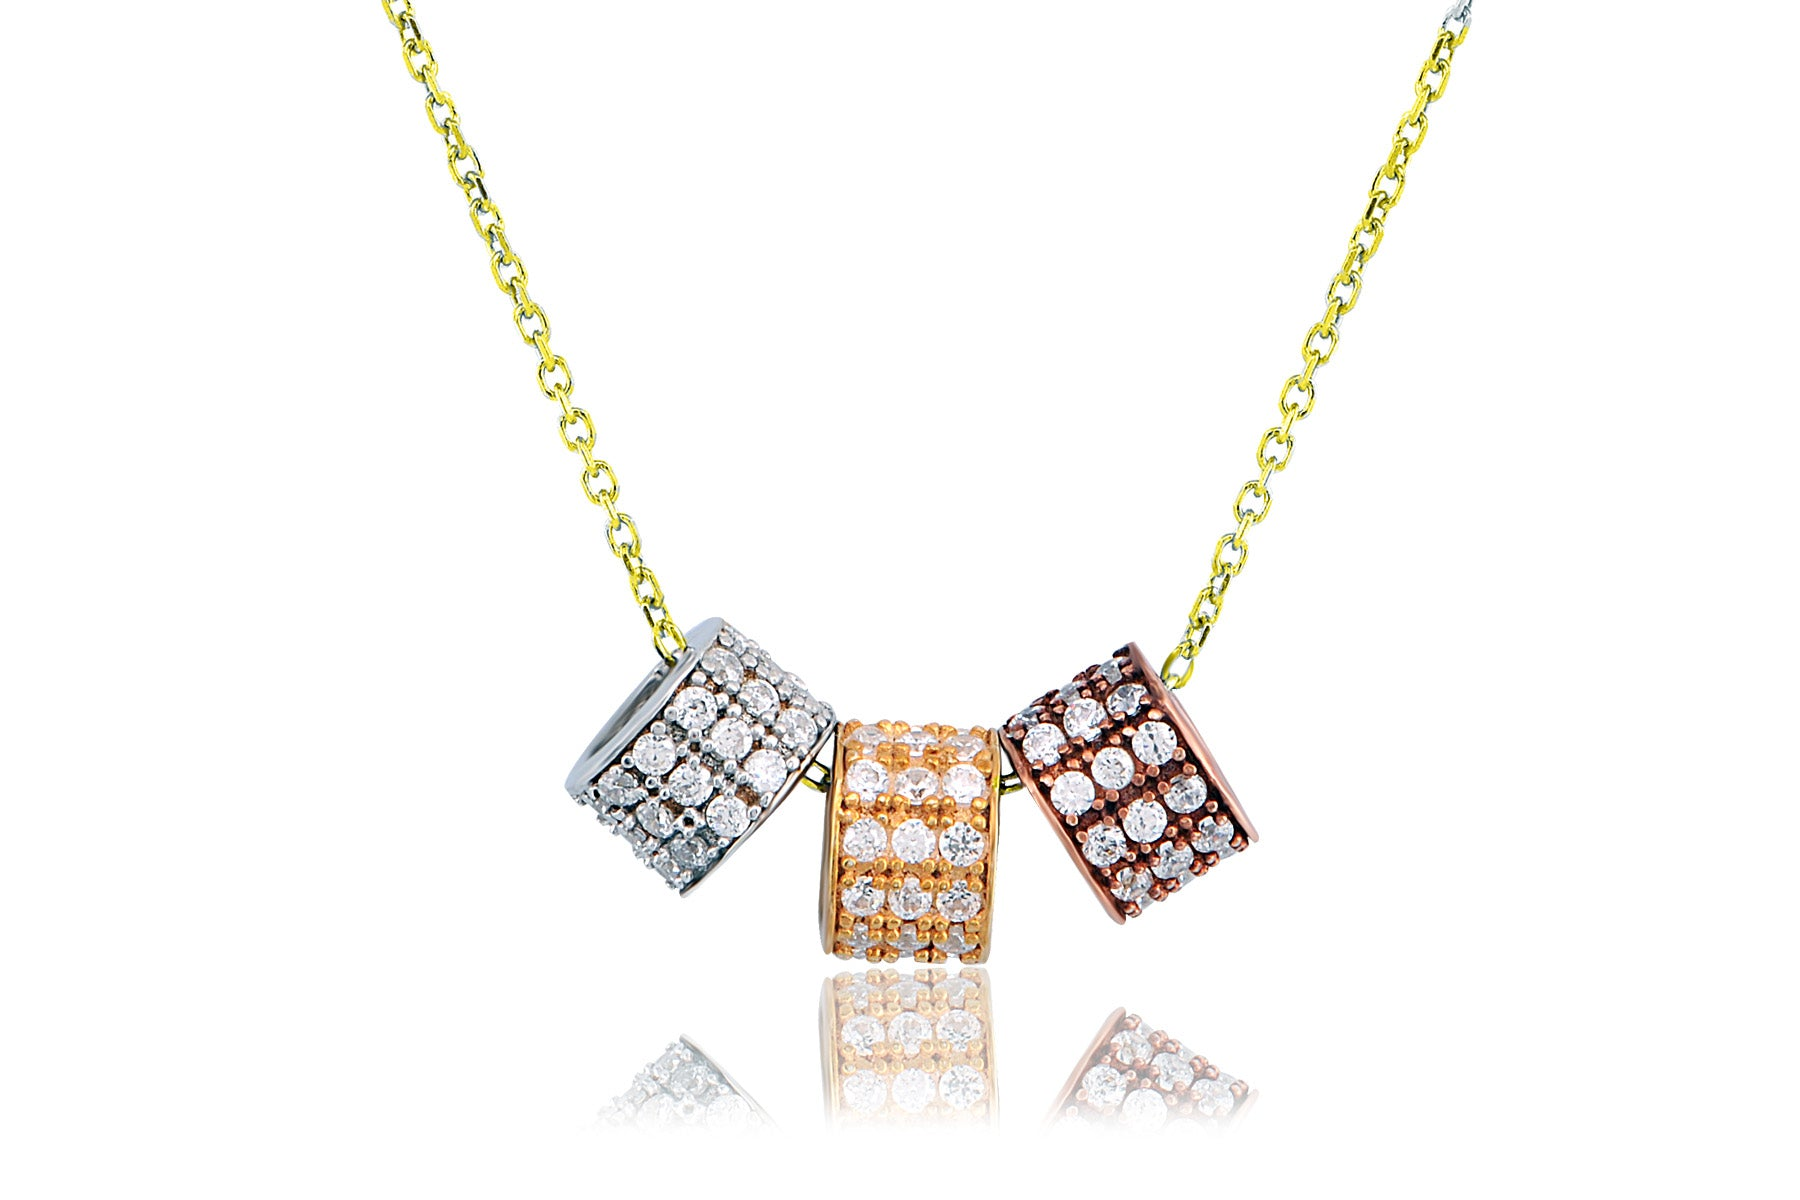 TRI-COLOR RHONDELLE NECKLACE - The Firestone Collection - Fashion Jewelry & Accessories